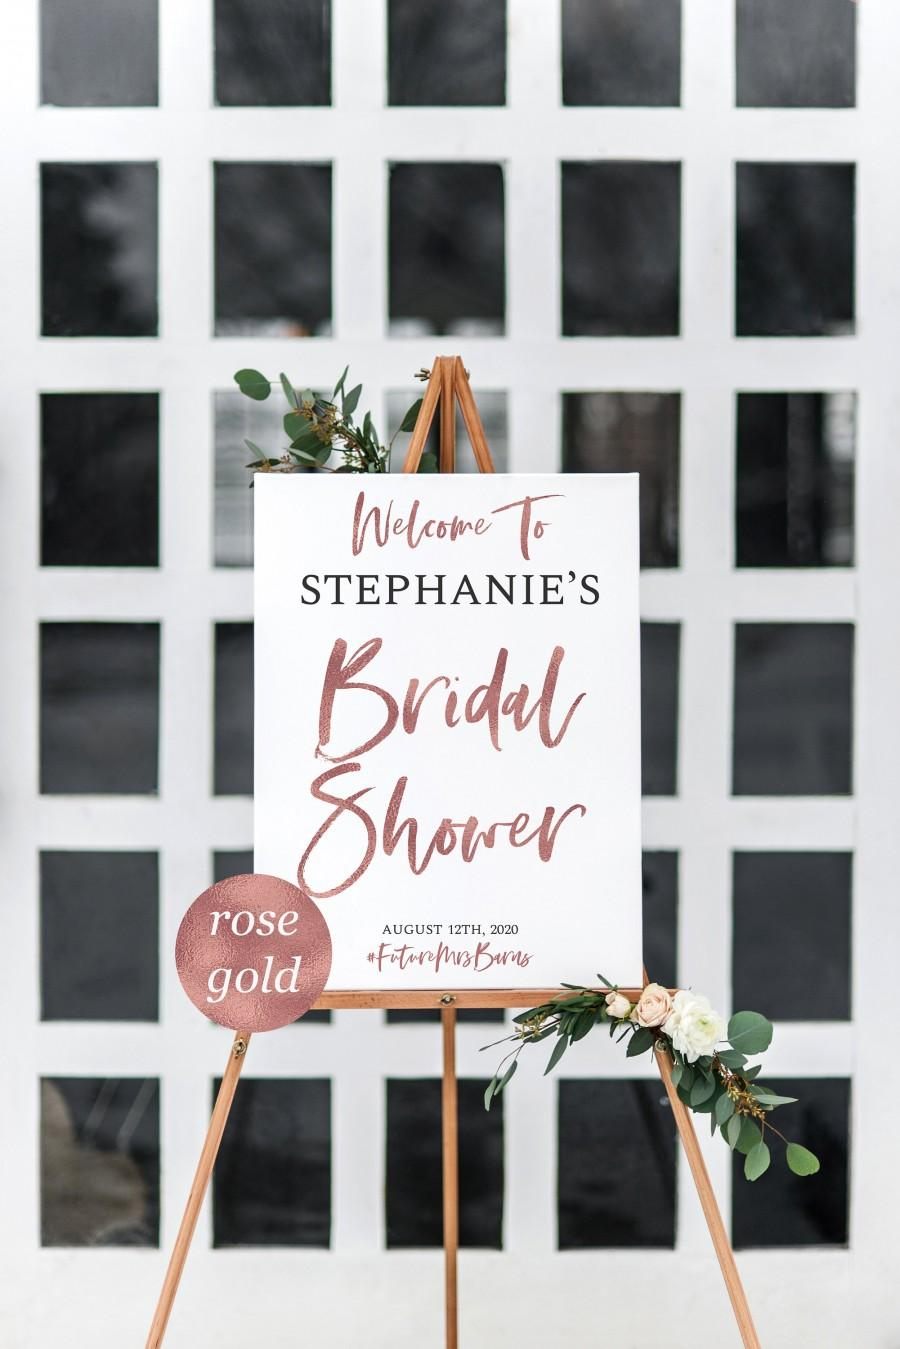 Wedding - Rose Gold Bridal Shower Welcome Sign Template Welcome Bridal Shower Sign Pink Gold Bridal Shower Rose Gold Calligraphy Bridal Shower #WP390